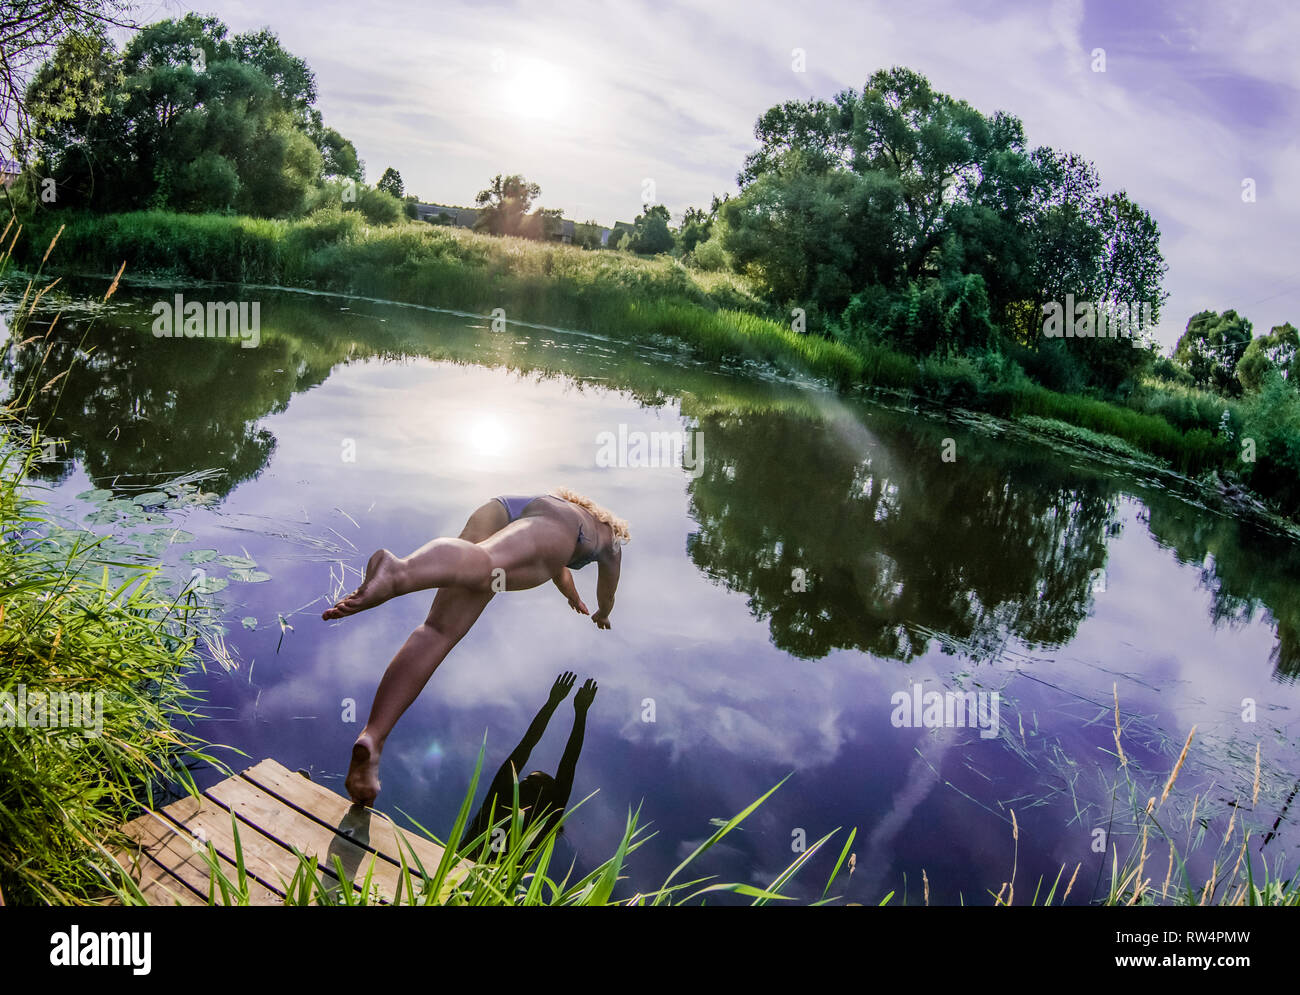 Woman jumping off wooden pier into a wild river Stock Photo